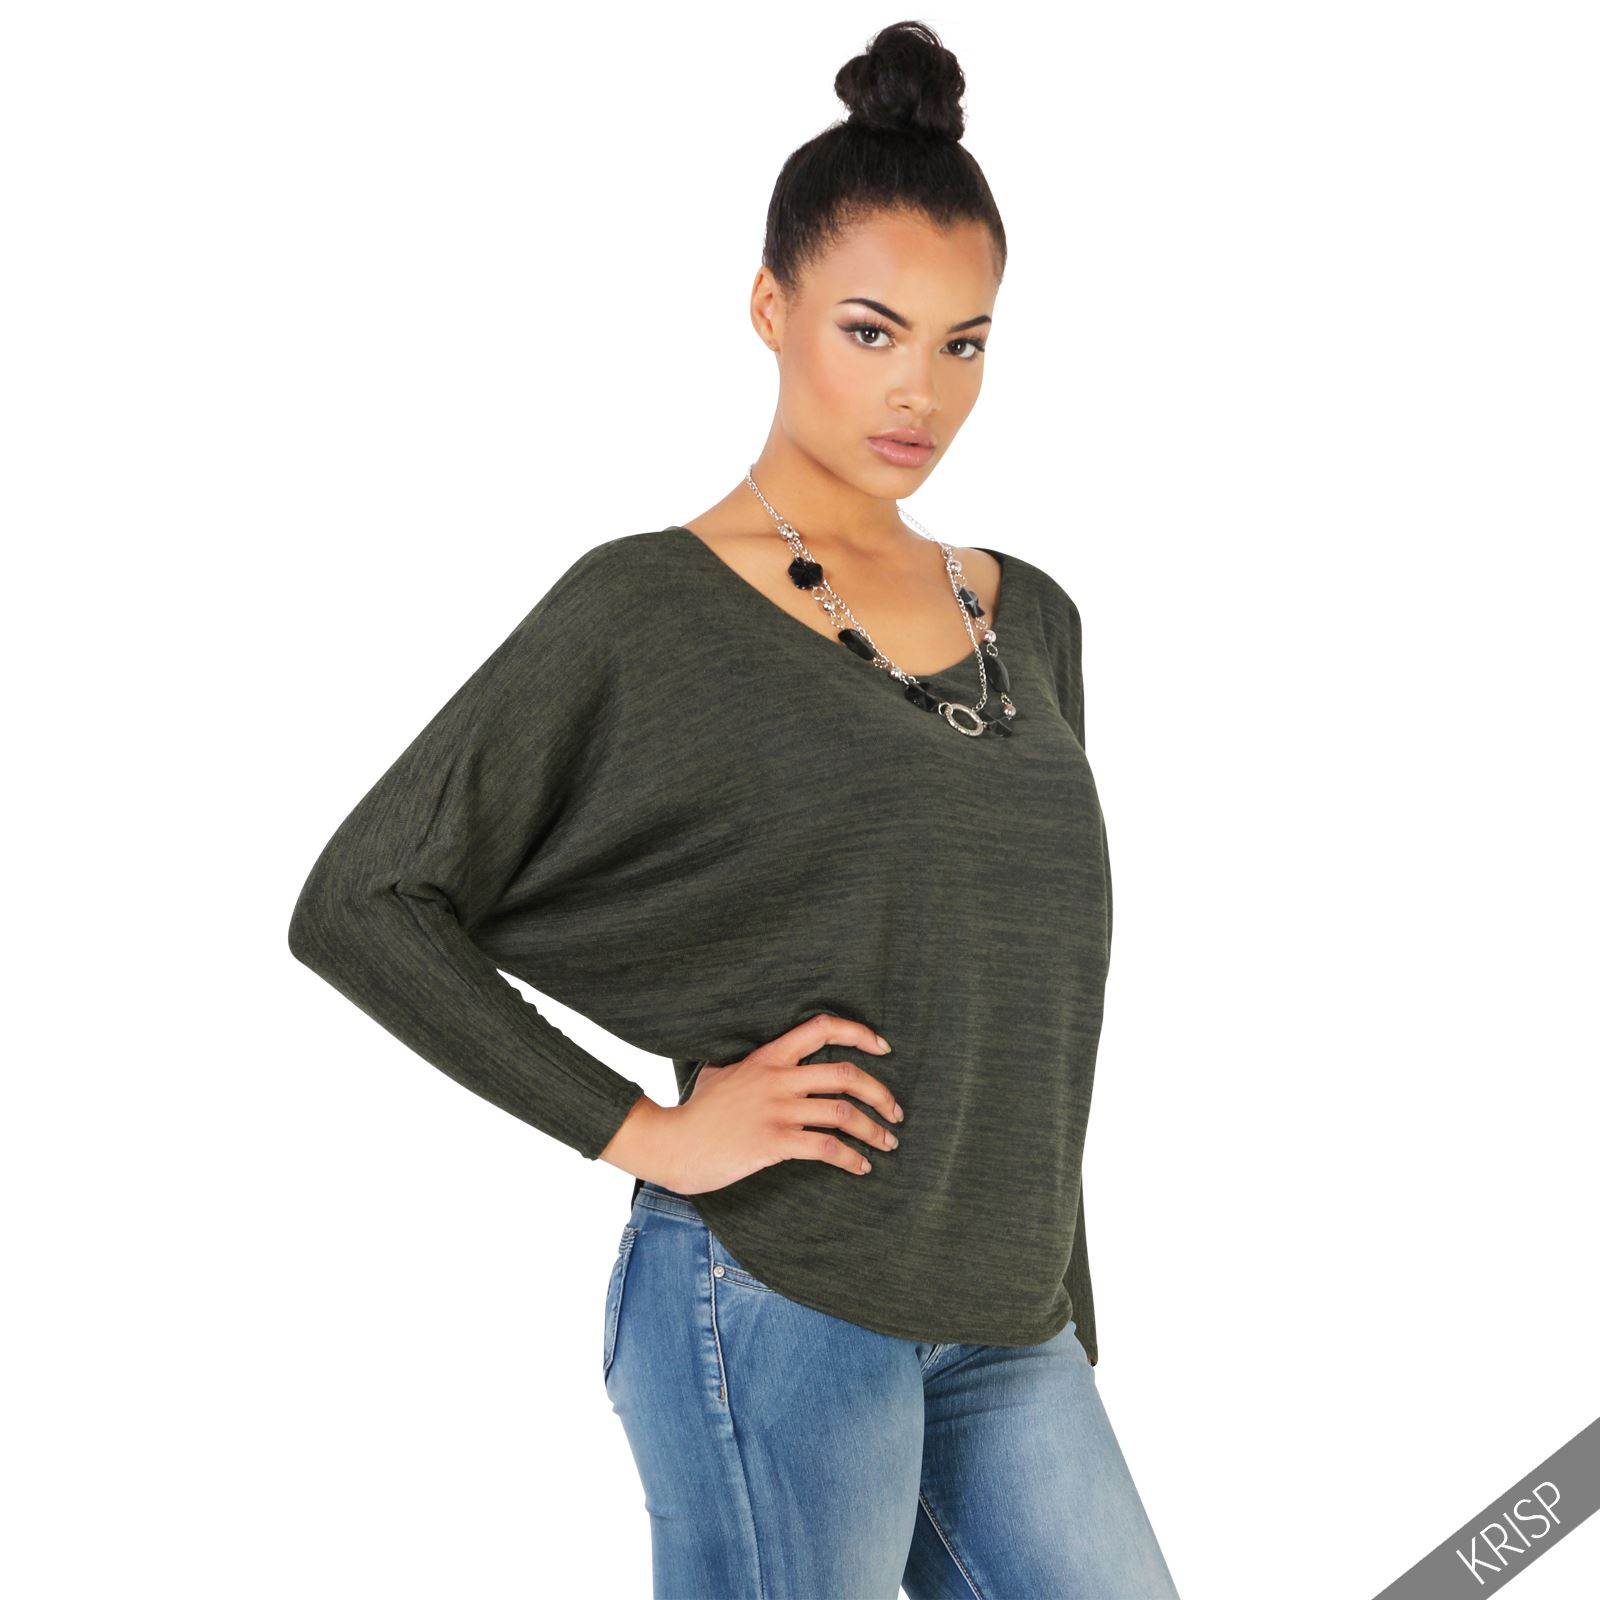 AliExpress carries many baggy womens tops related products, including women's baggy tops, baggy woman tops, ladies baggy tops, women blous baggy, mens baggy tops, baggy tops mens, men baggy tops, mens tunic pants, tops womens pants.